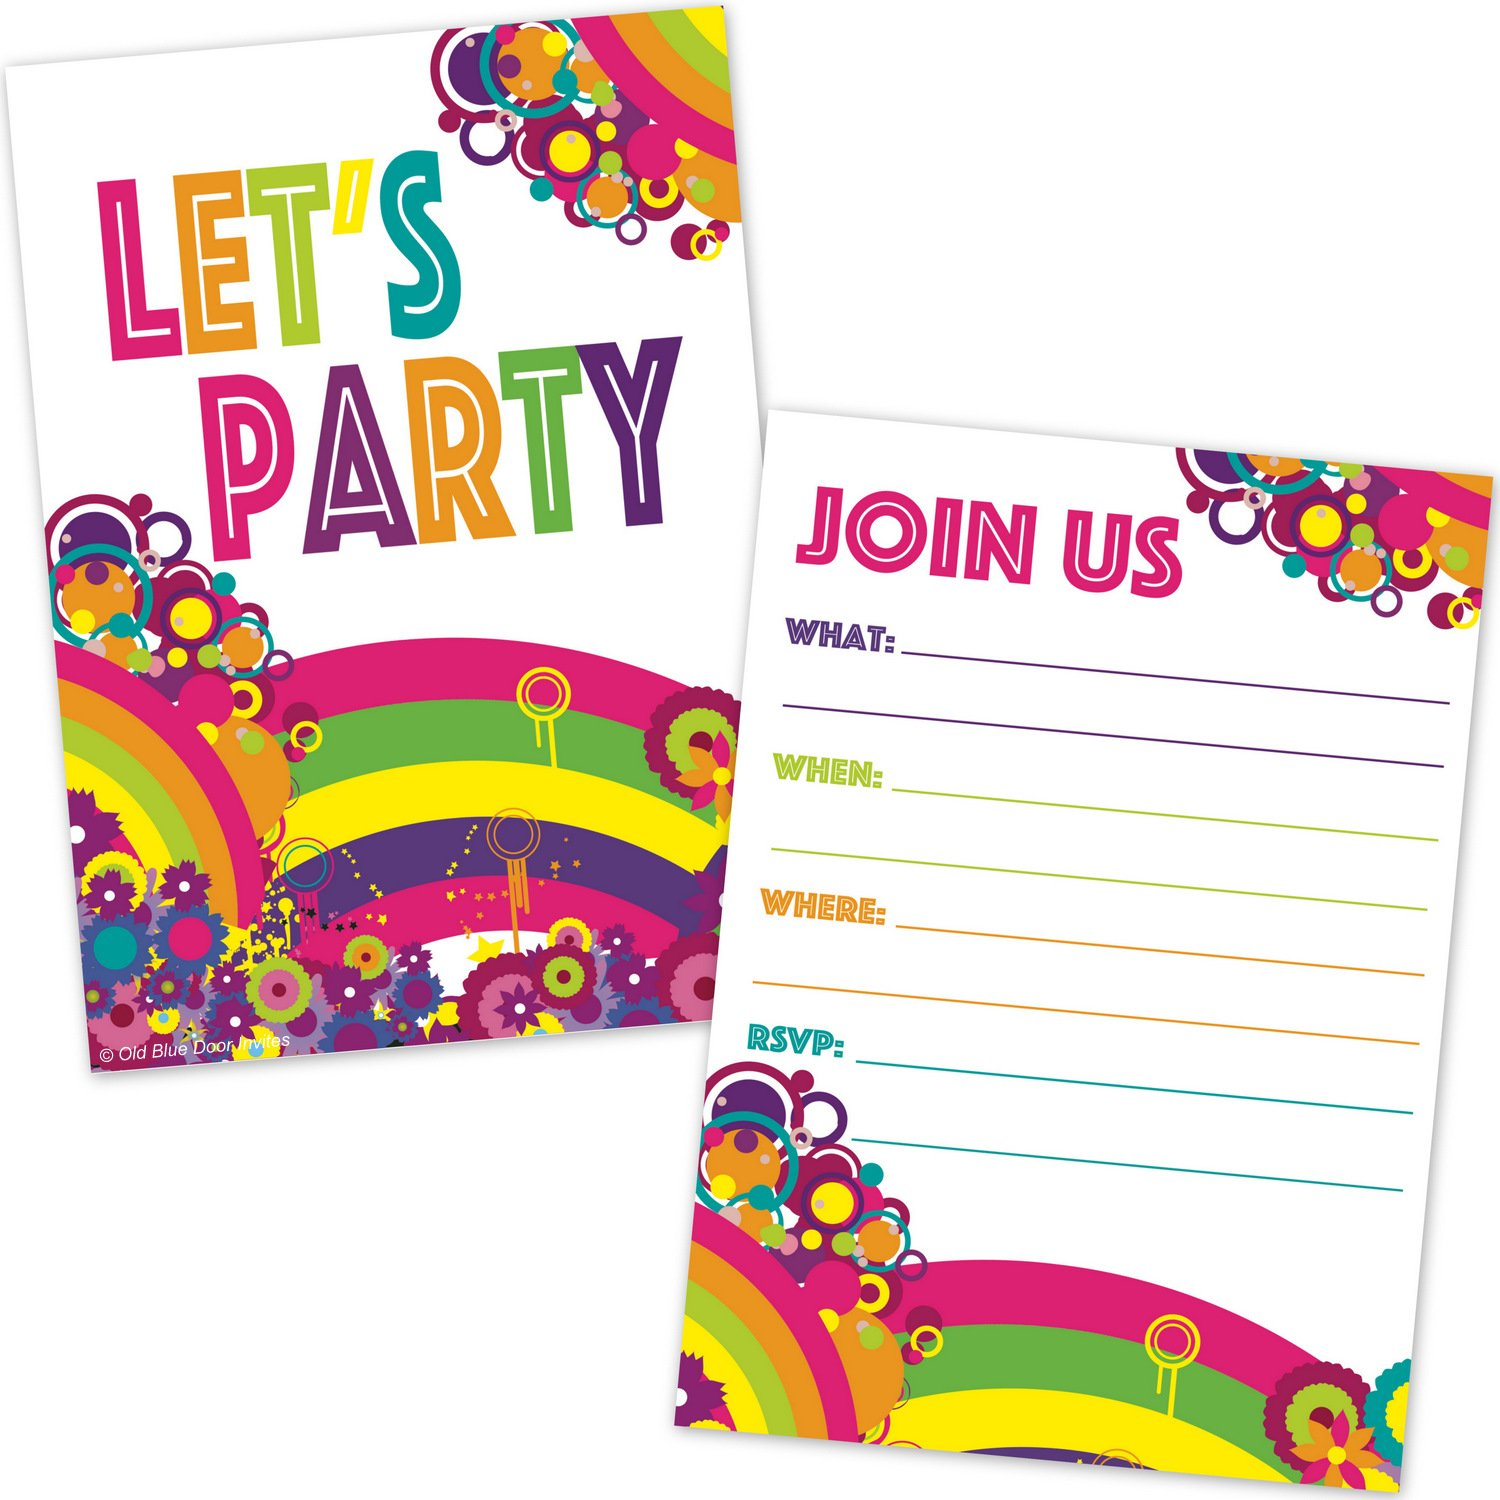 Old Blue Door Invites Colorful Retro Rainbow Art Splash Party Invitations For Any Occasion